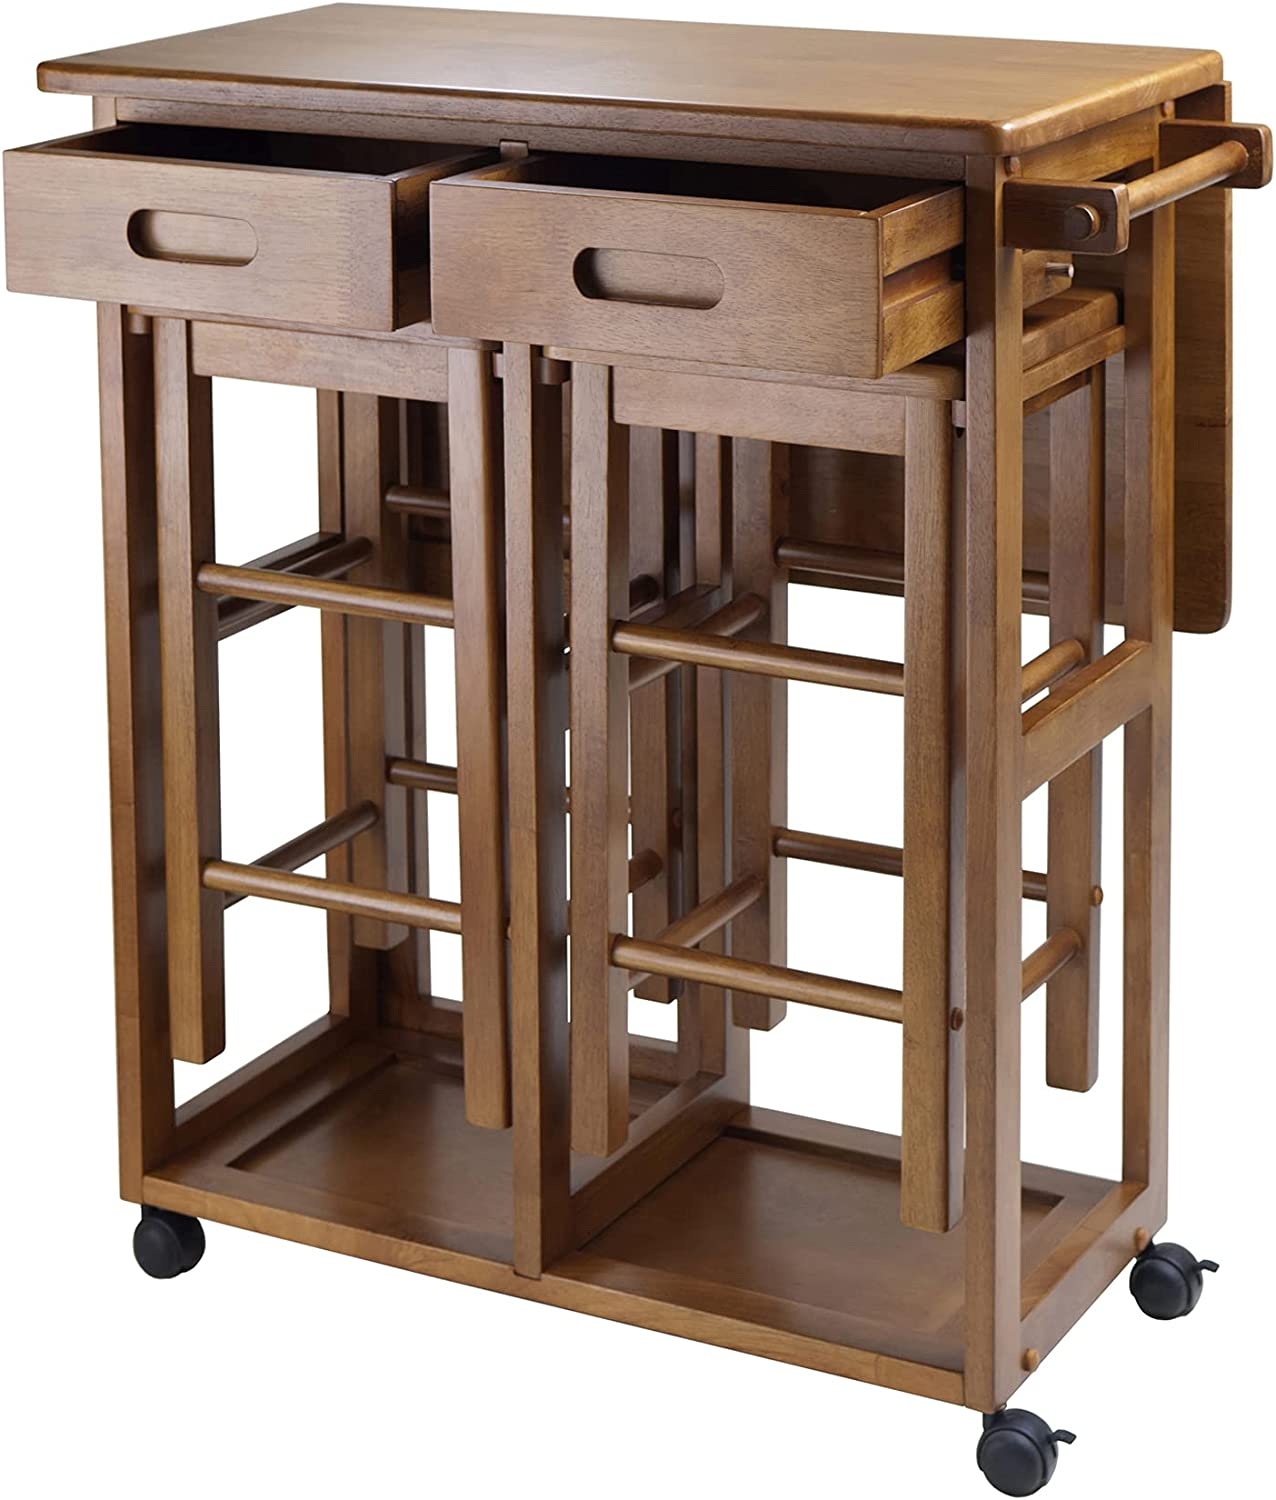 Winsome Wood Suzanne Kitchen, (1 Pack ( Teak ), 29.61 x 29.13 x 32.75 Inches)